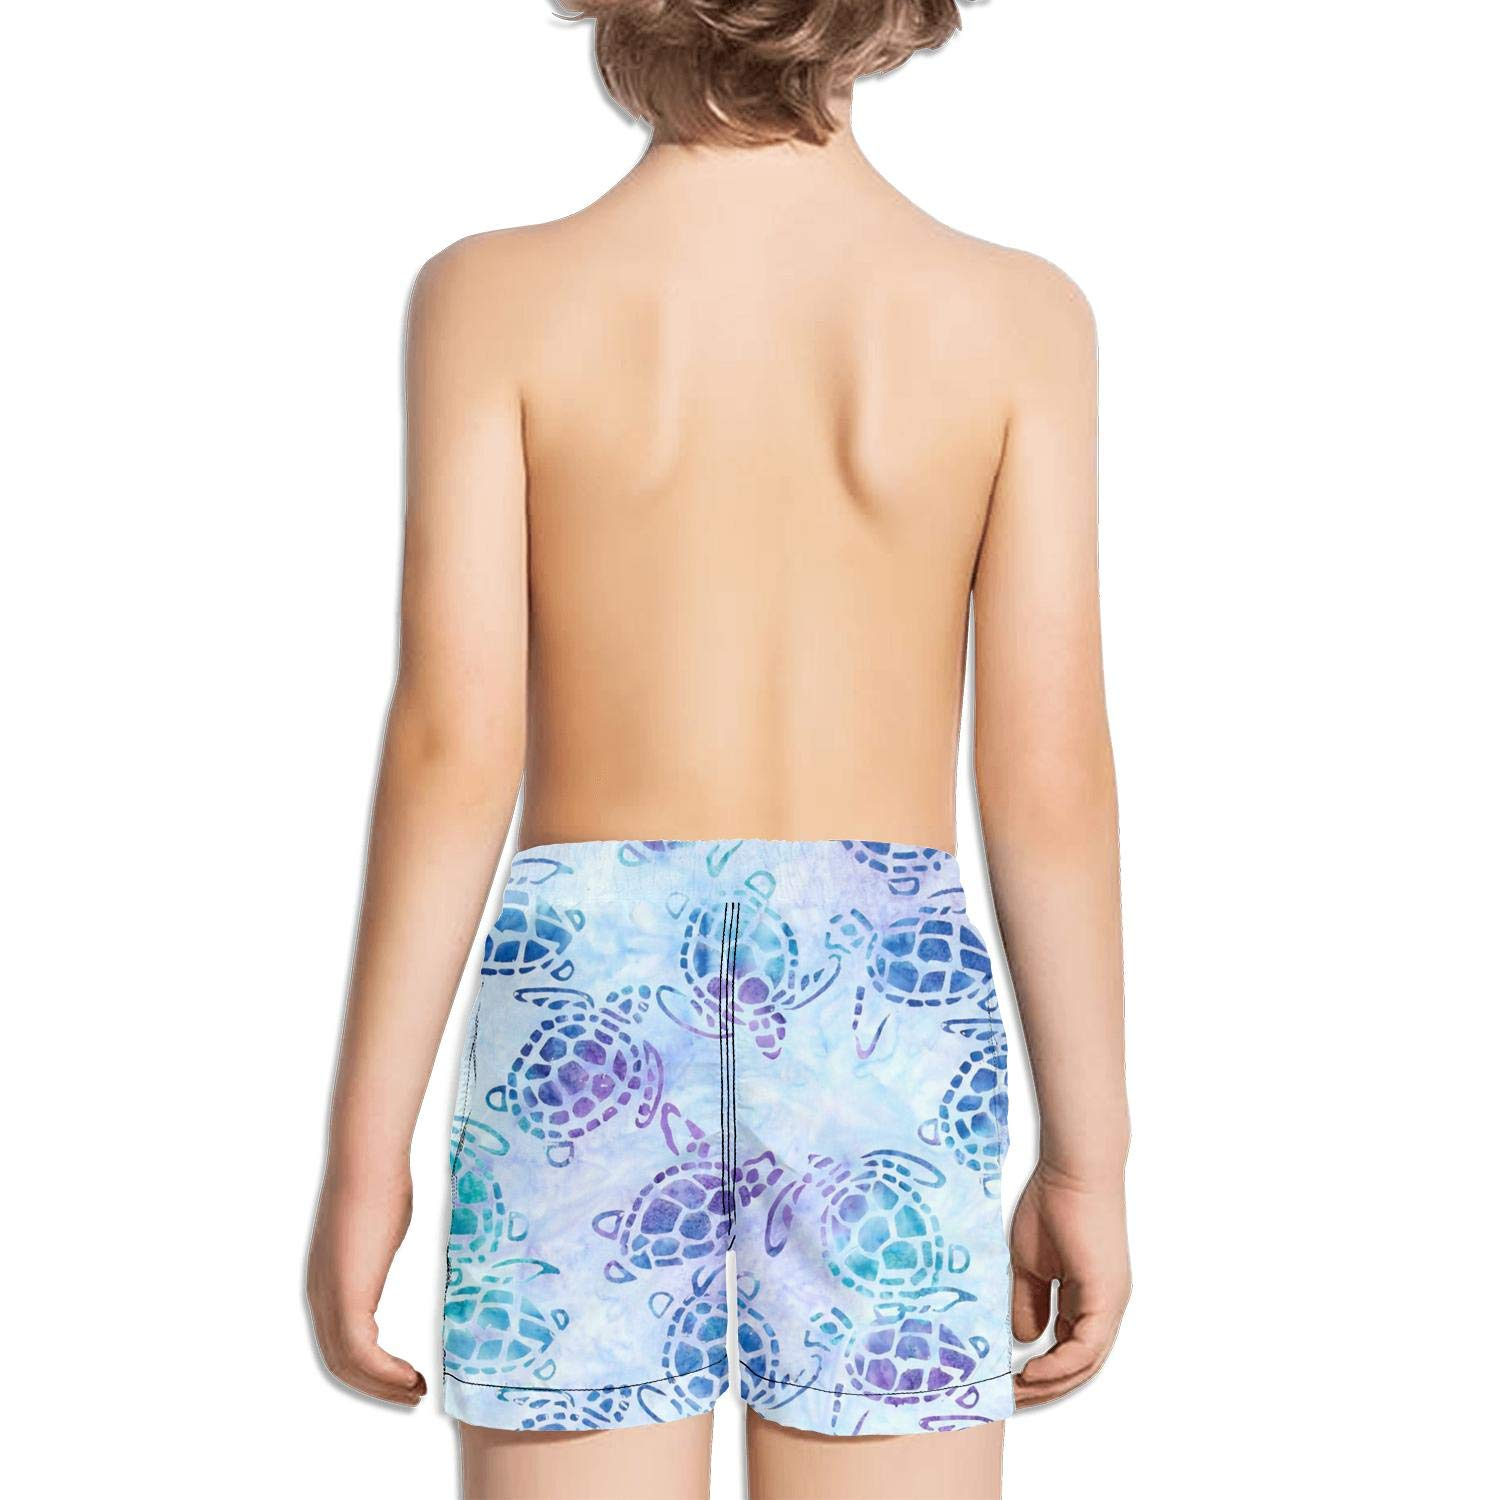 Sea Turtle Art Boys Girls Swimming Trunks Beach Board Shorts Ruched Quick Dry Funny Summer Kids Short Pants